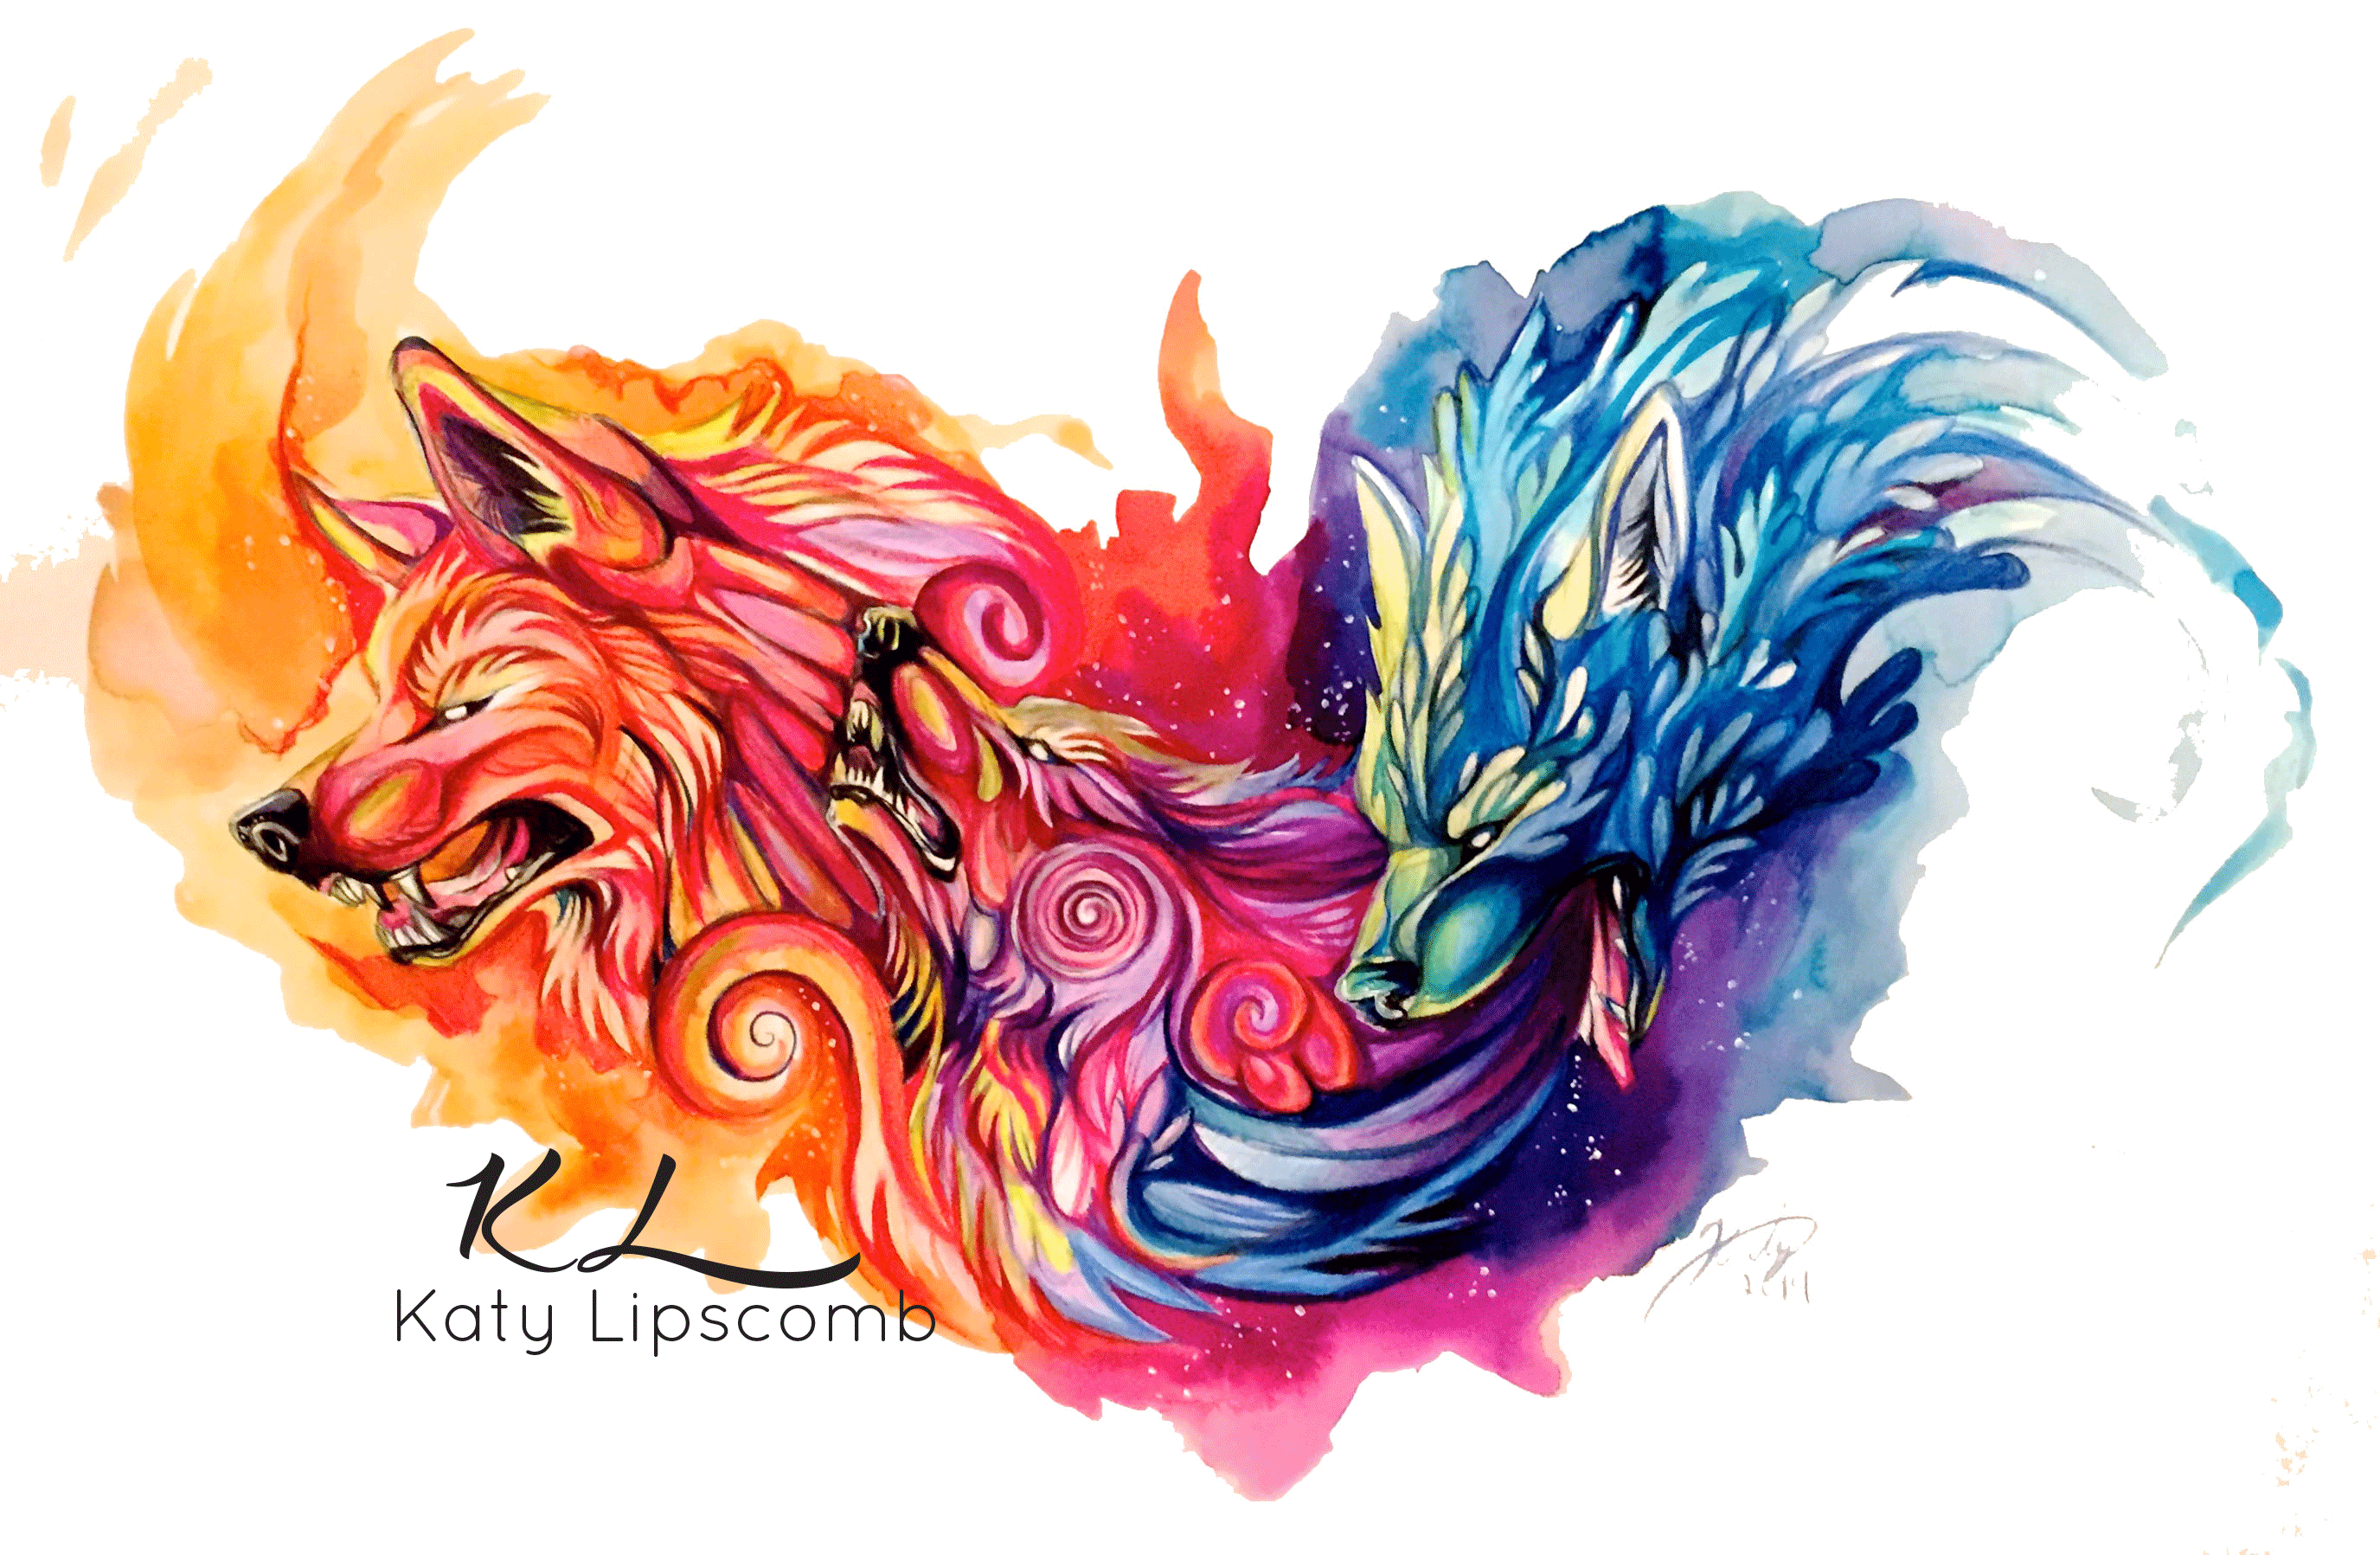 mystic wolves 8x10in print katy lipscomb online store powered